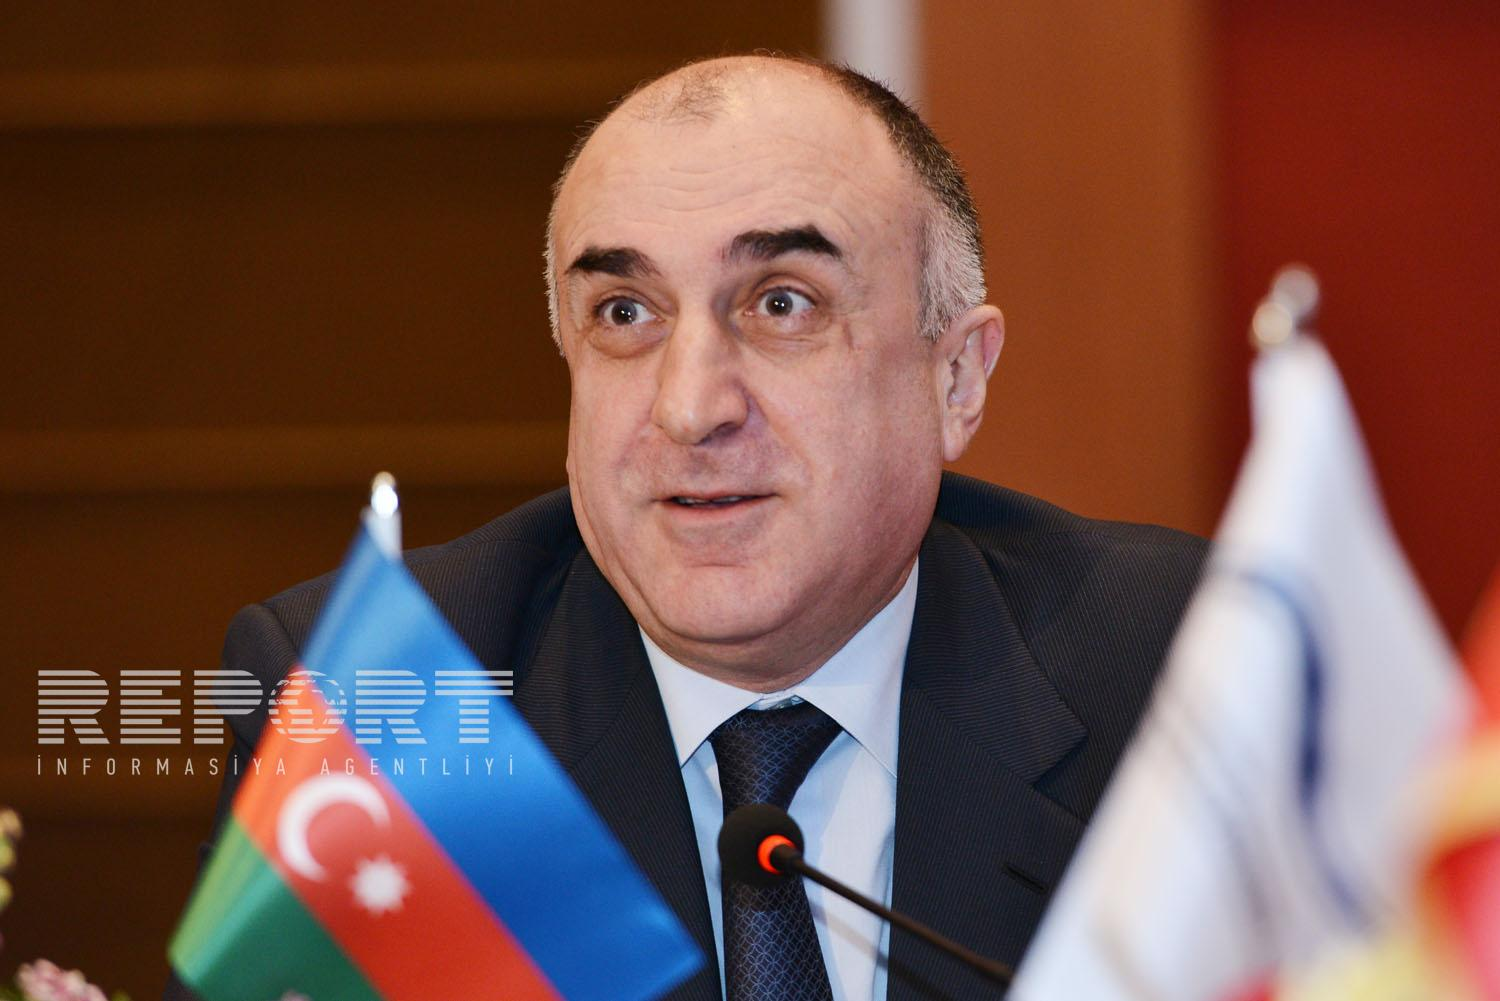 Foreign Minister: Azerbaijan intends to develop relations with EU on basis of bilateral partnership